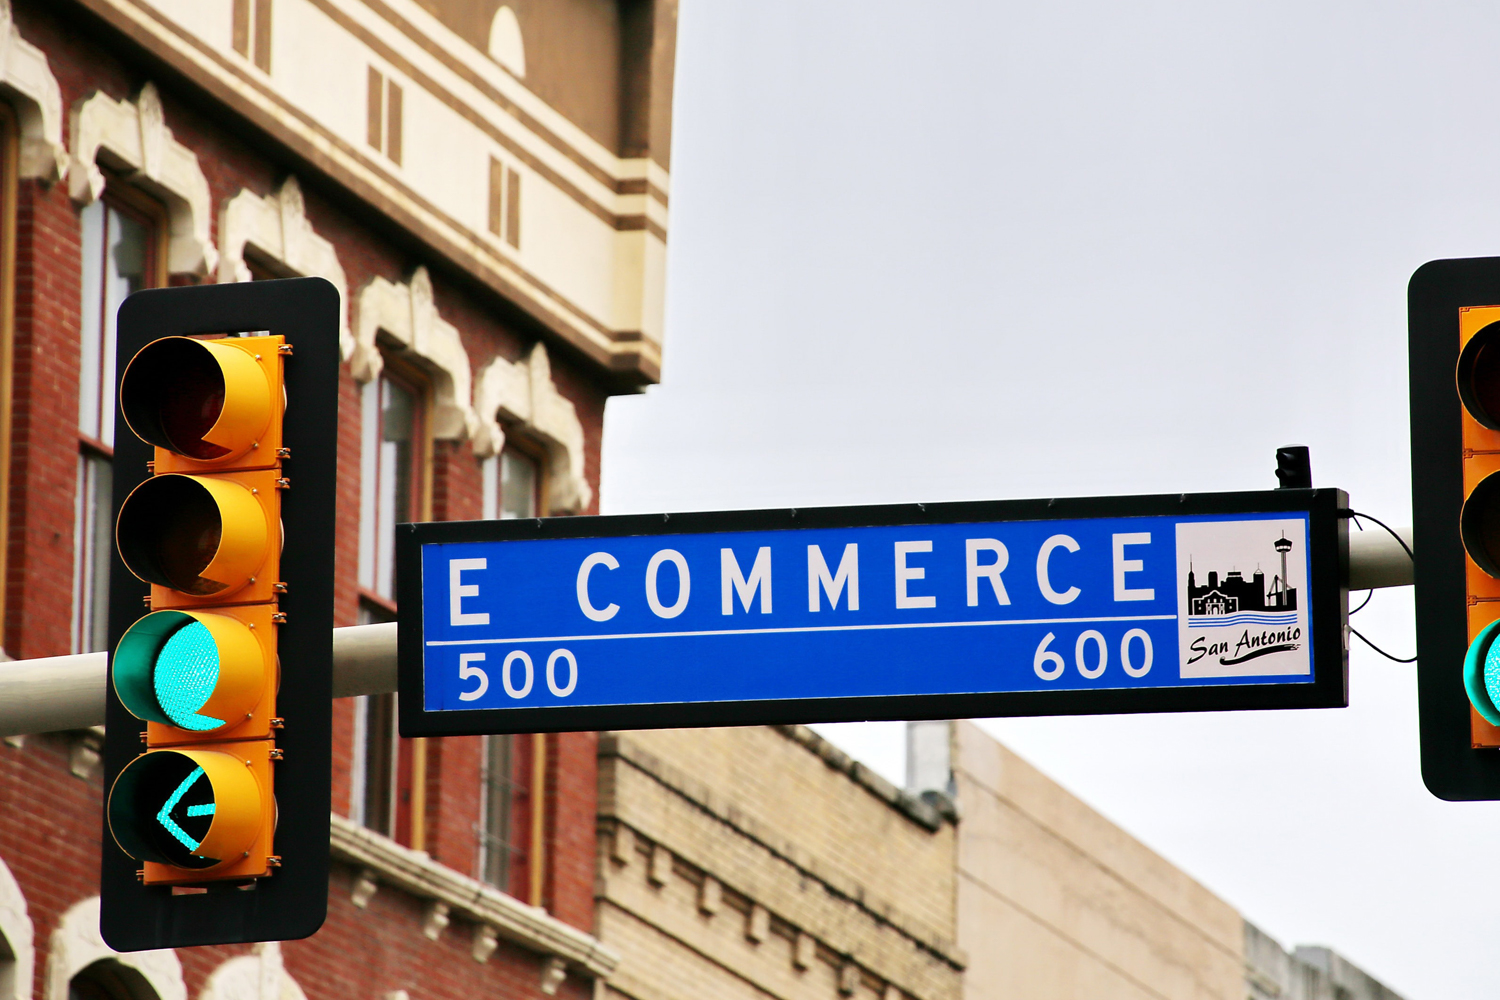 8 facts you need to know before you start an e-commerce business